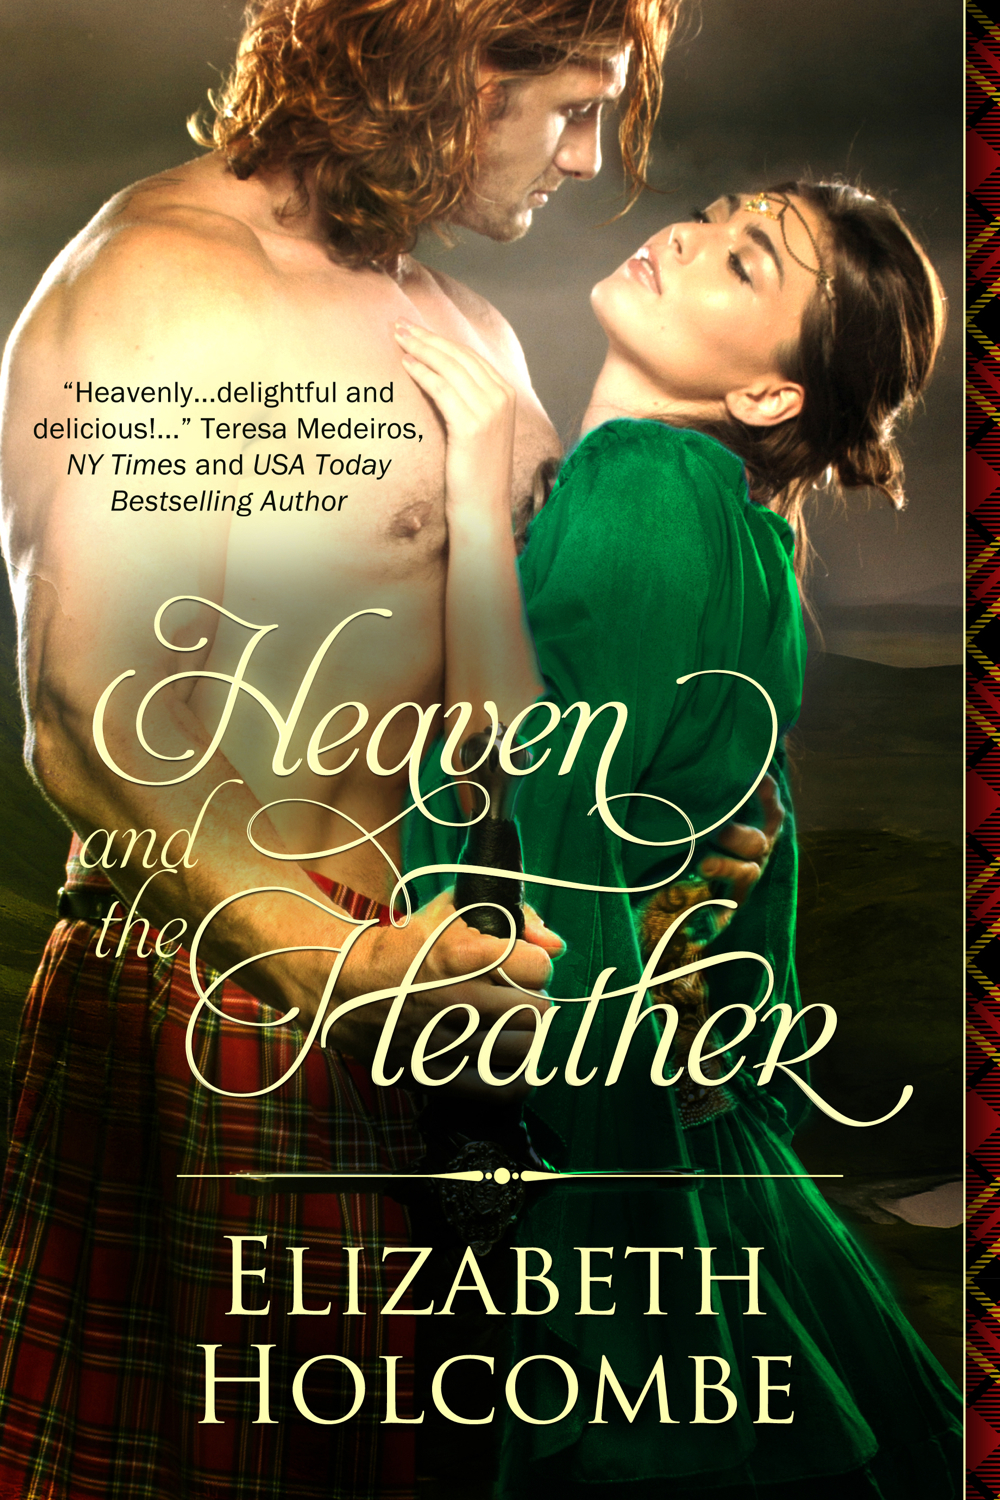 Romance Book Cover Pictures : Historical romance custom ebook and print book covers design